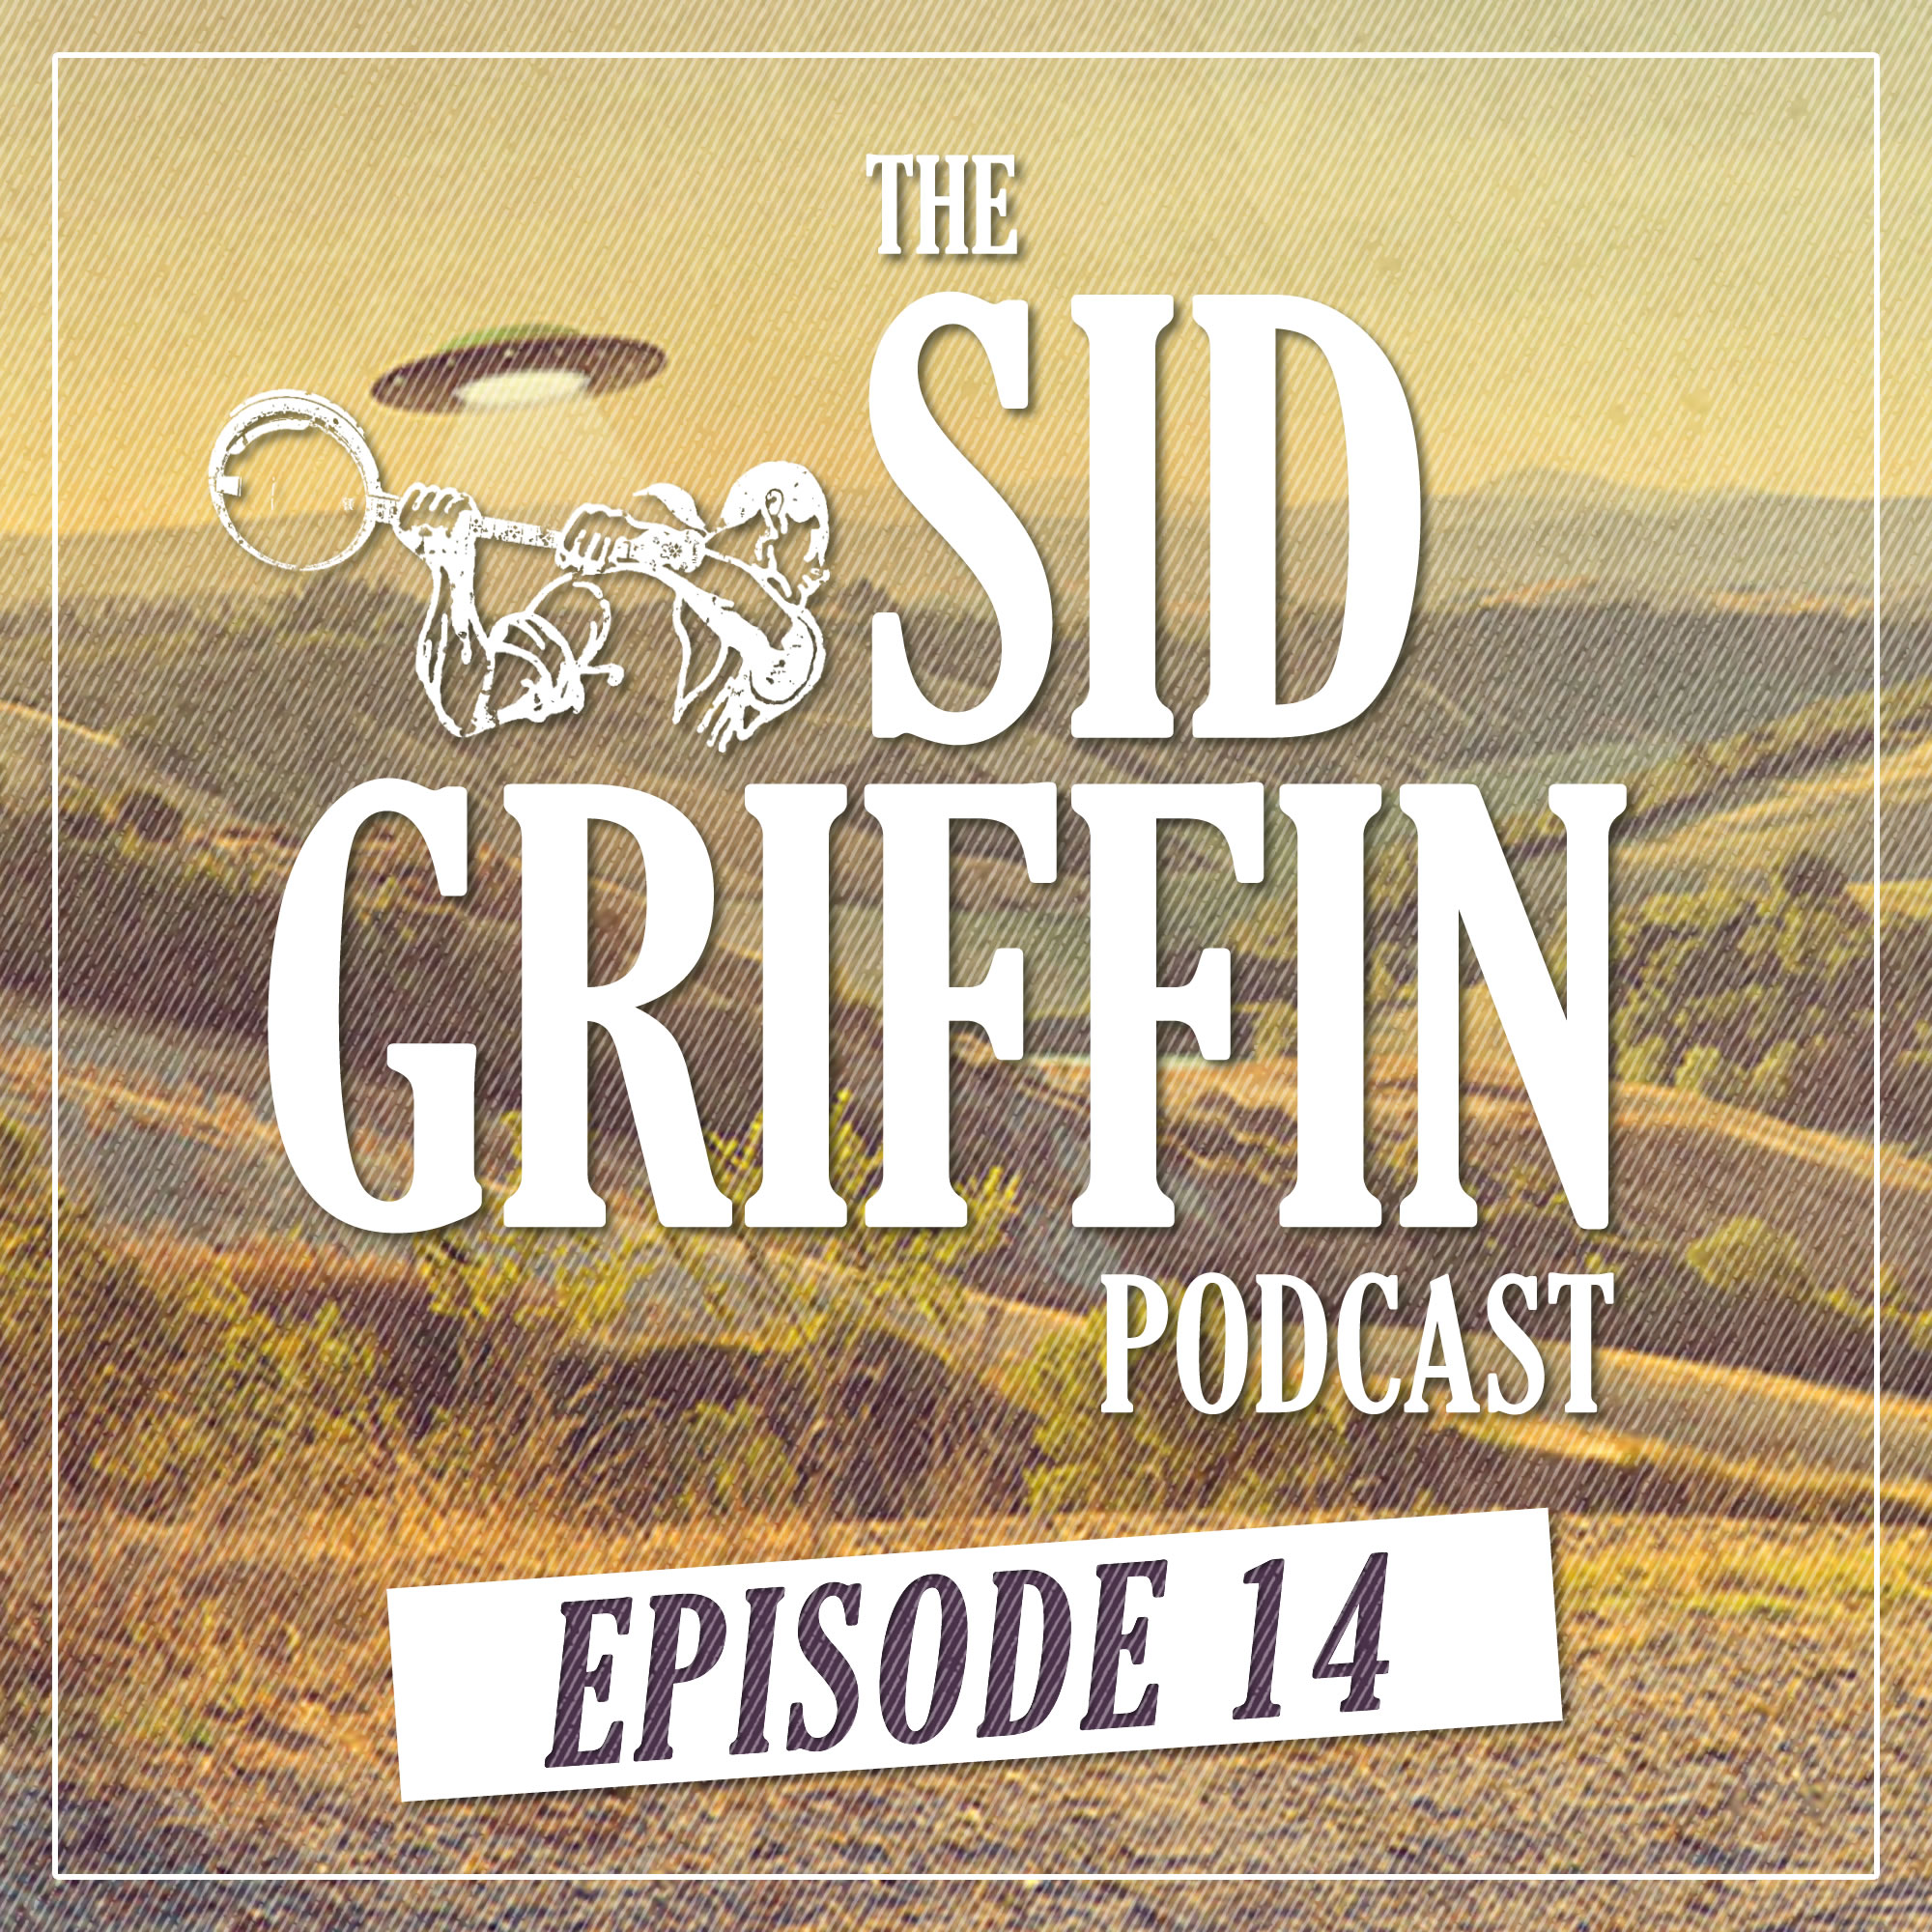 Call All Coal Porters, The Sid Griffin Podcast - No.14